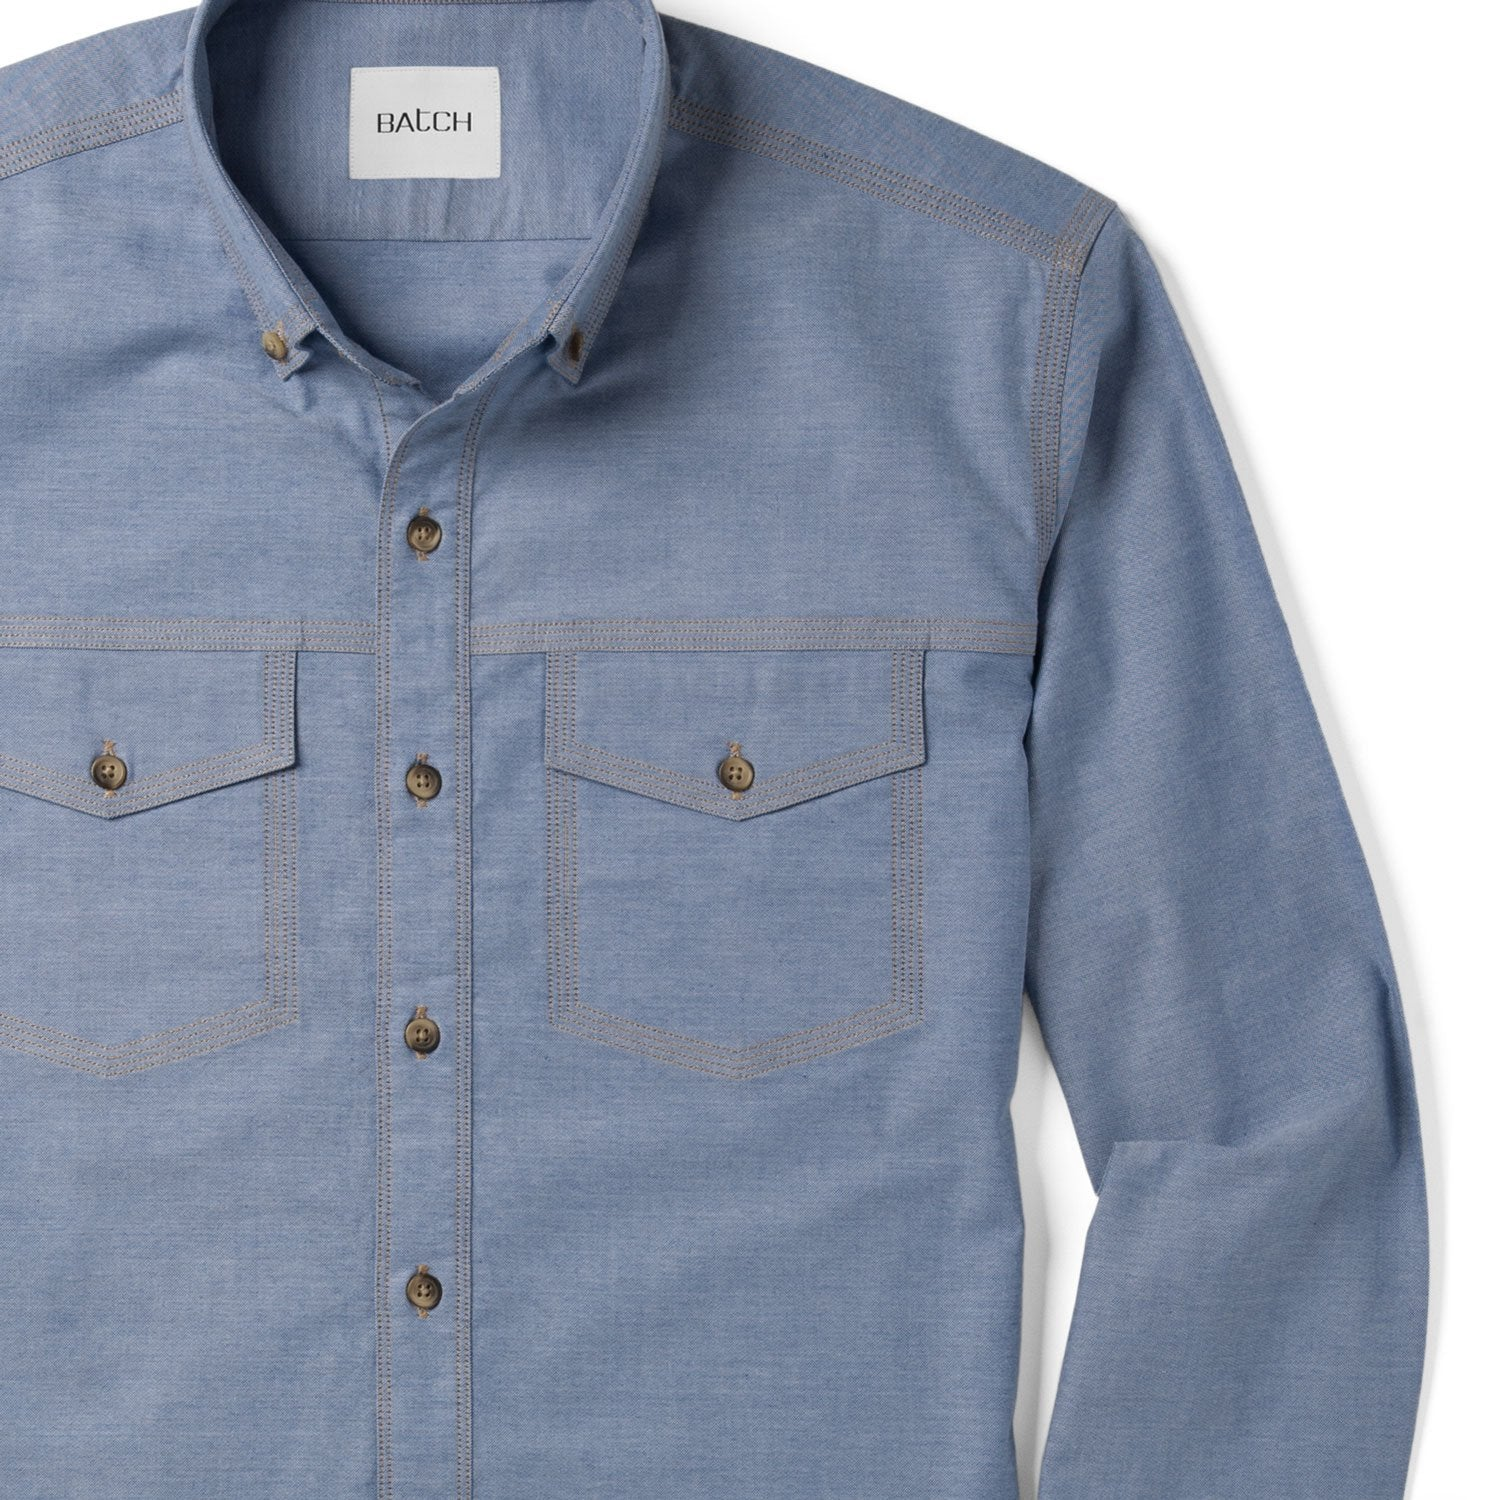 Men's Casual Author Button Up Shirt in Blue Close-Up On Stitching